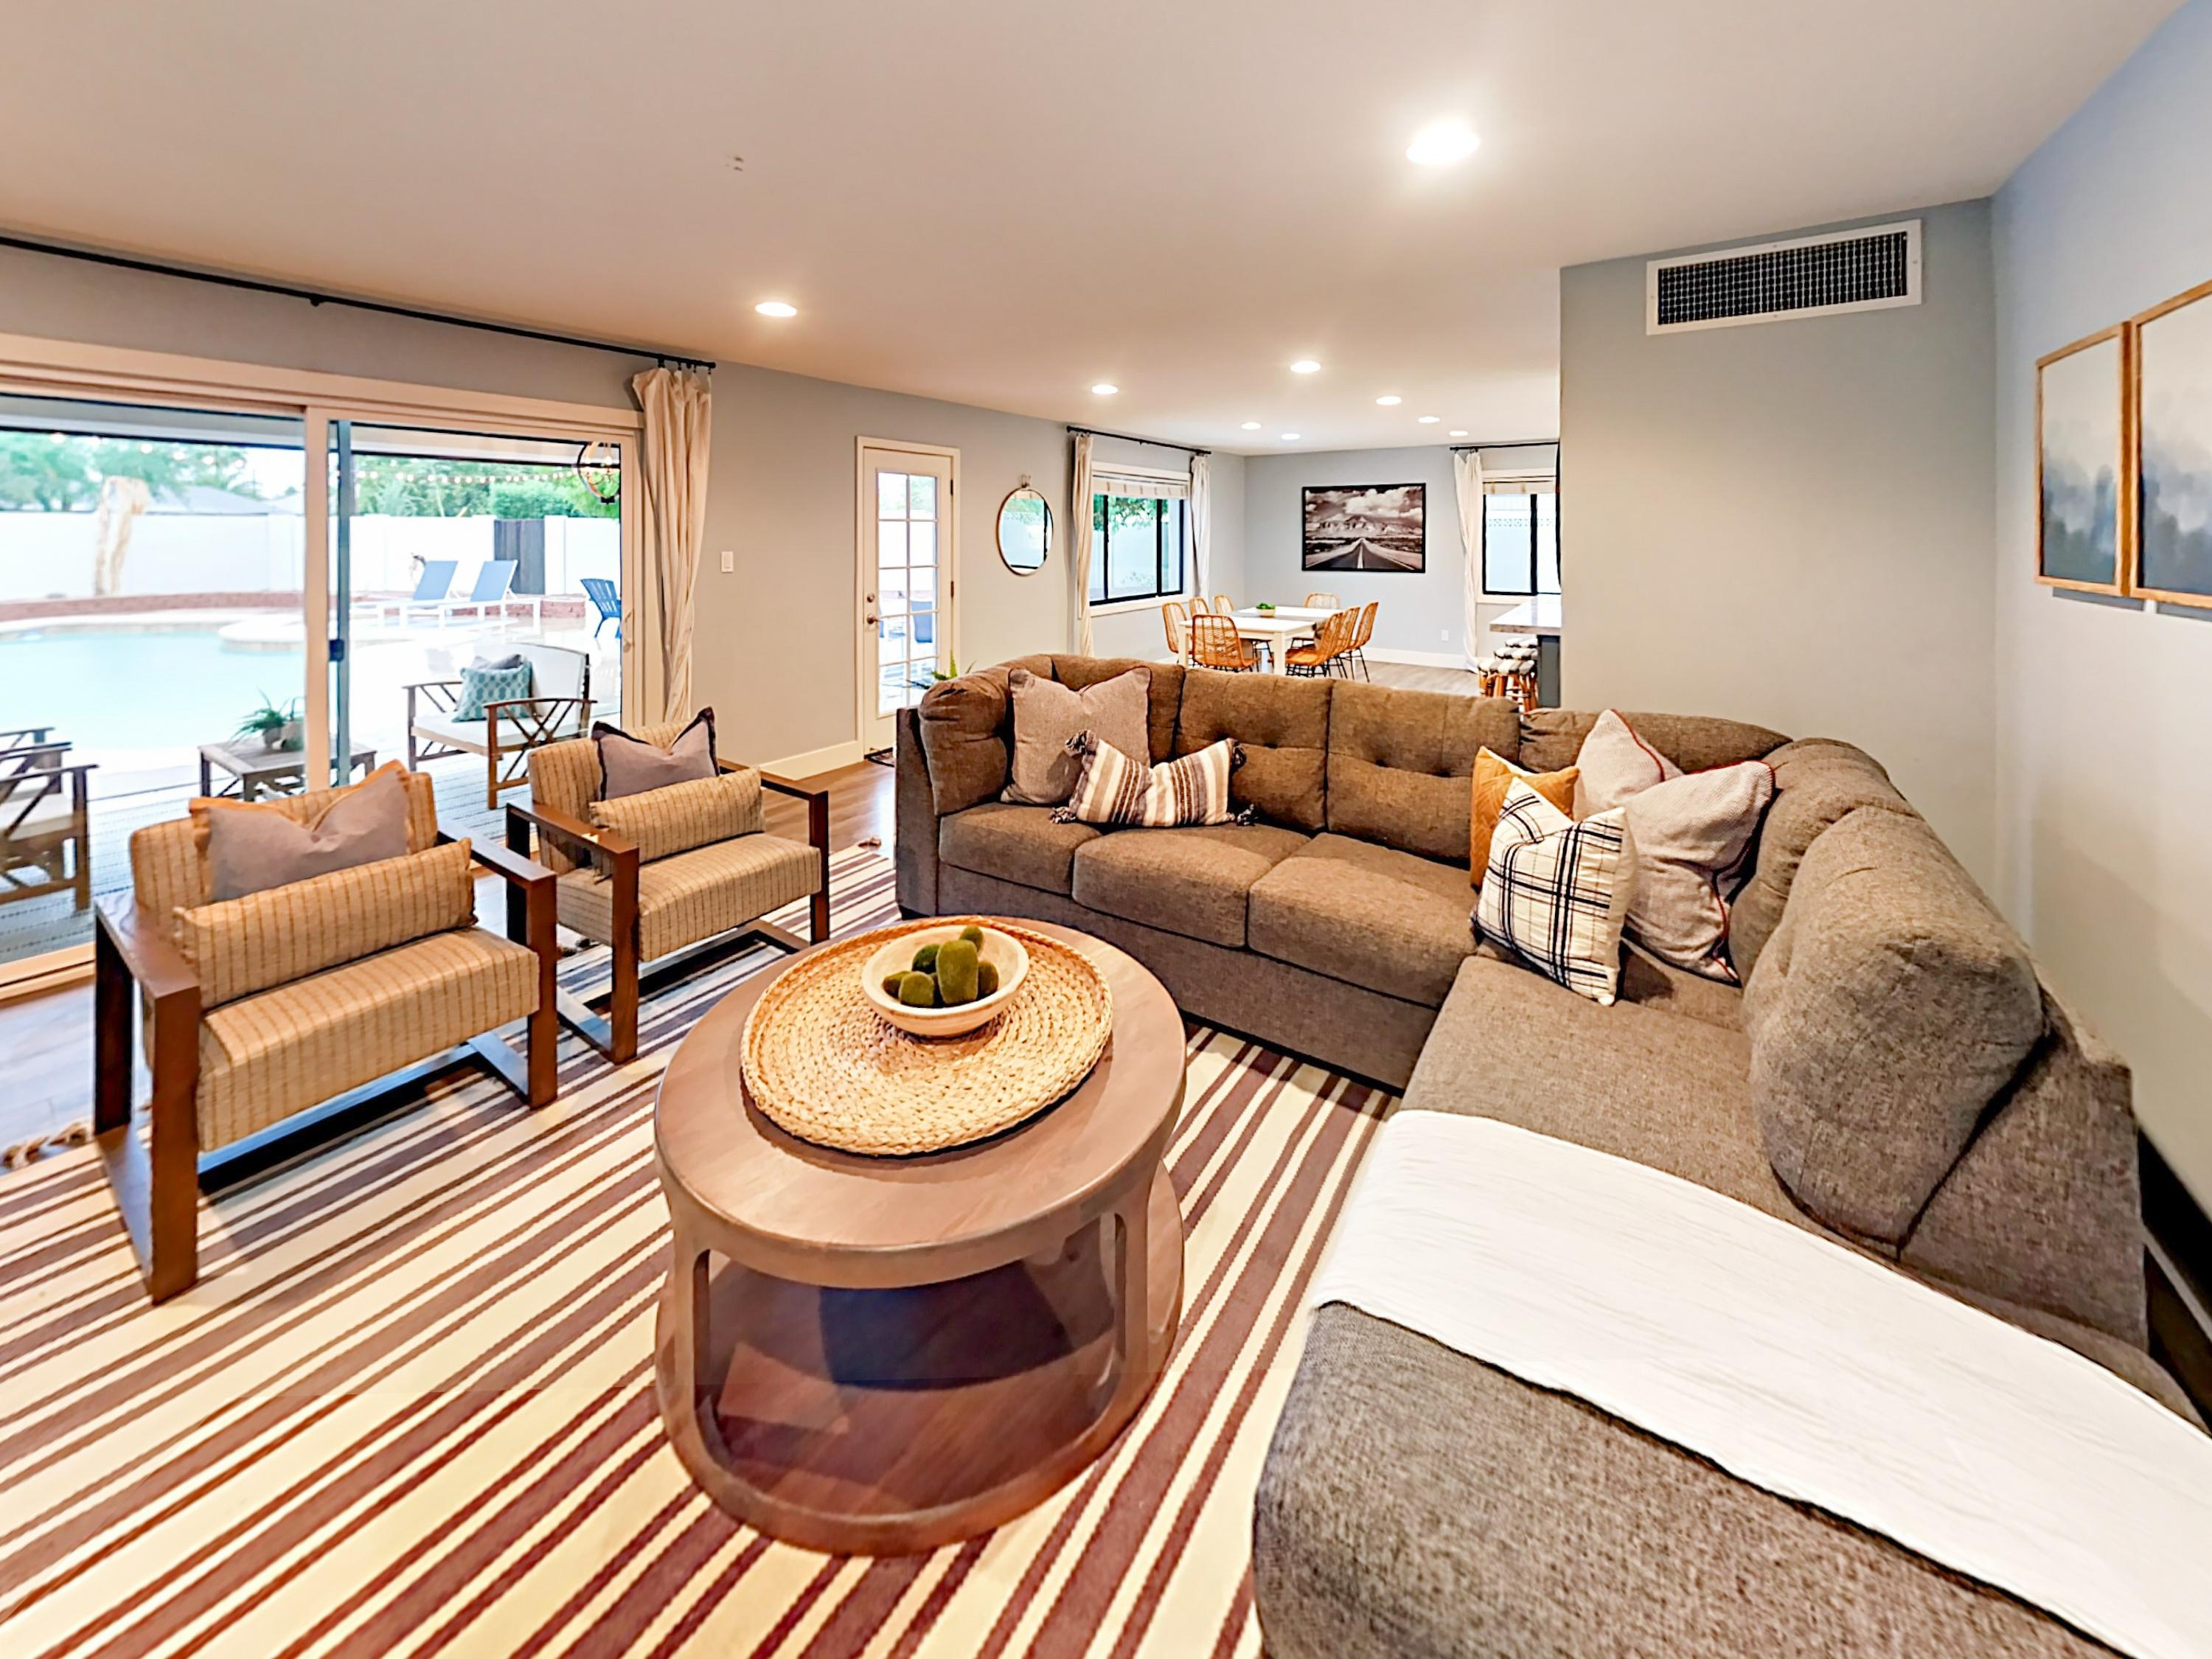 Welcome to Scottsdale! Your rental is professionally managed by TurnKey Vacation Rentals.